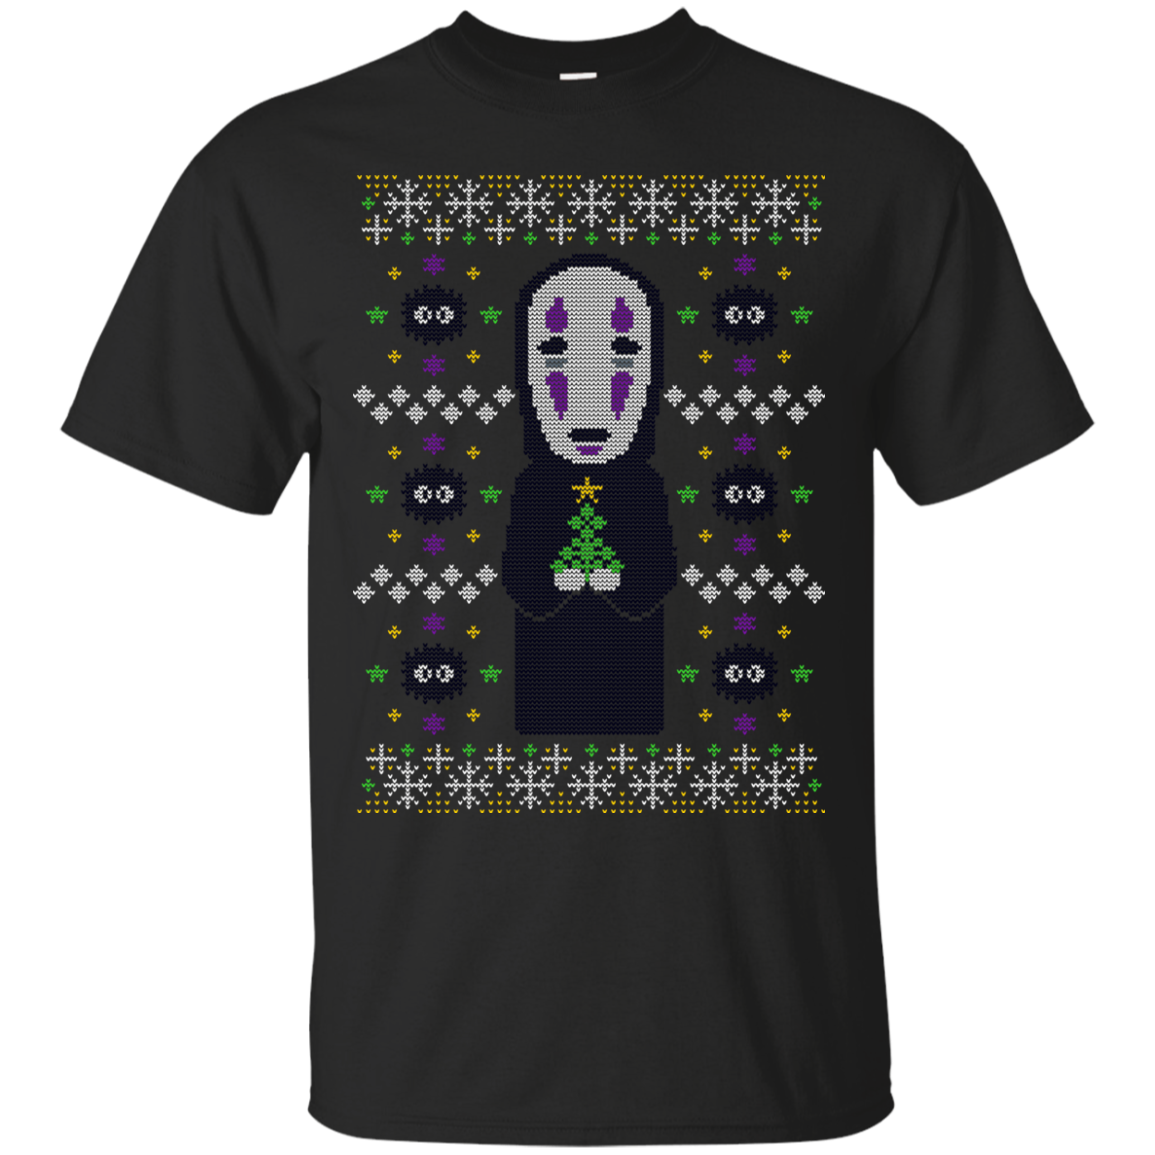 A Spirited Sweater Holiday Sweater T-Shirts Funny Ugly Christmas Sweater Shirt